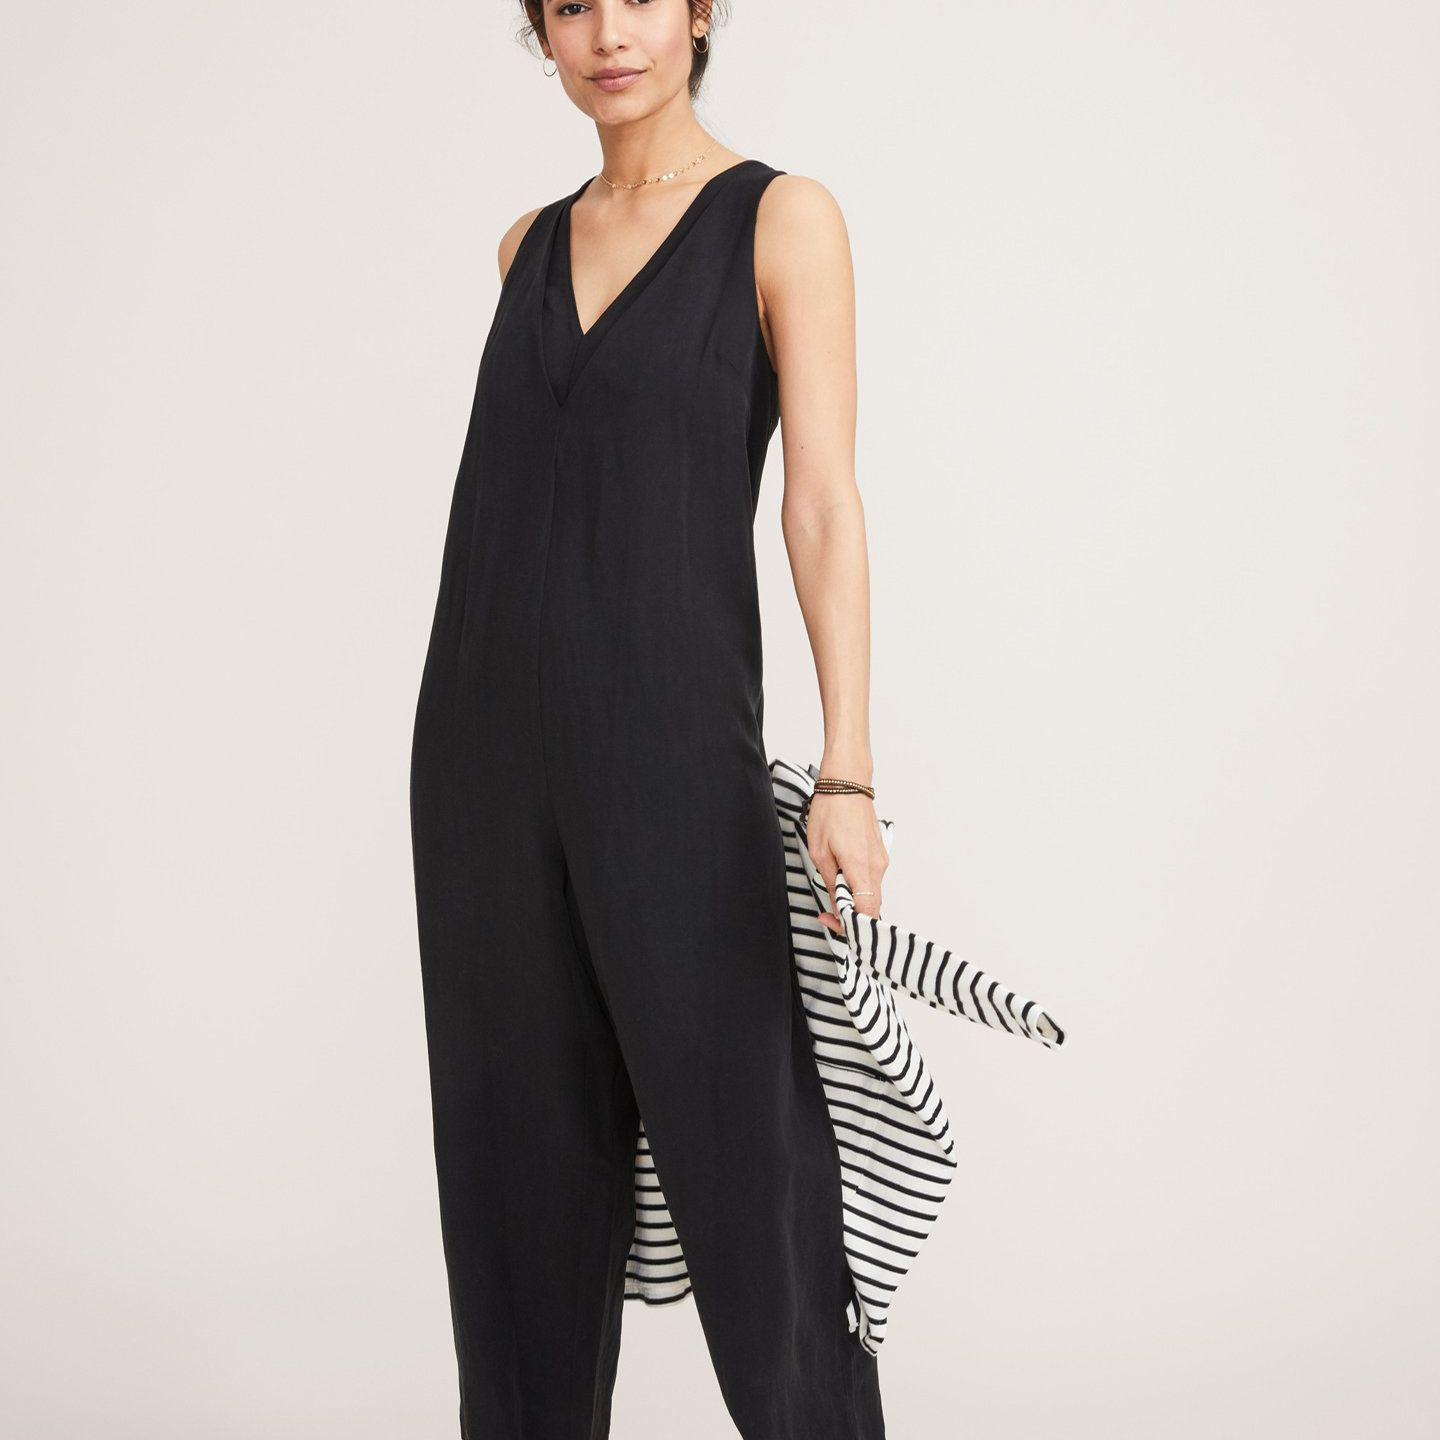 The Back In The Game Nursing Jumpsuit